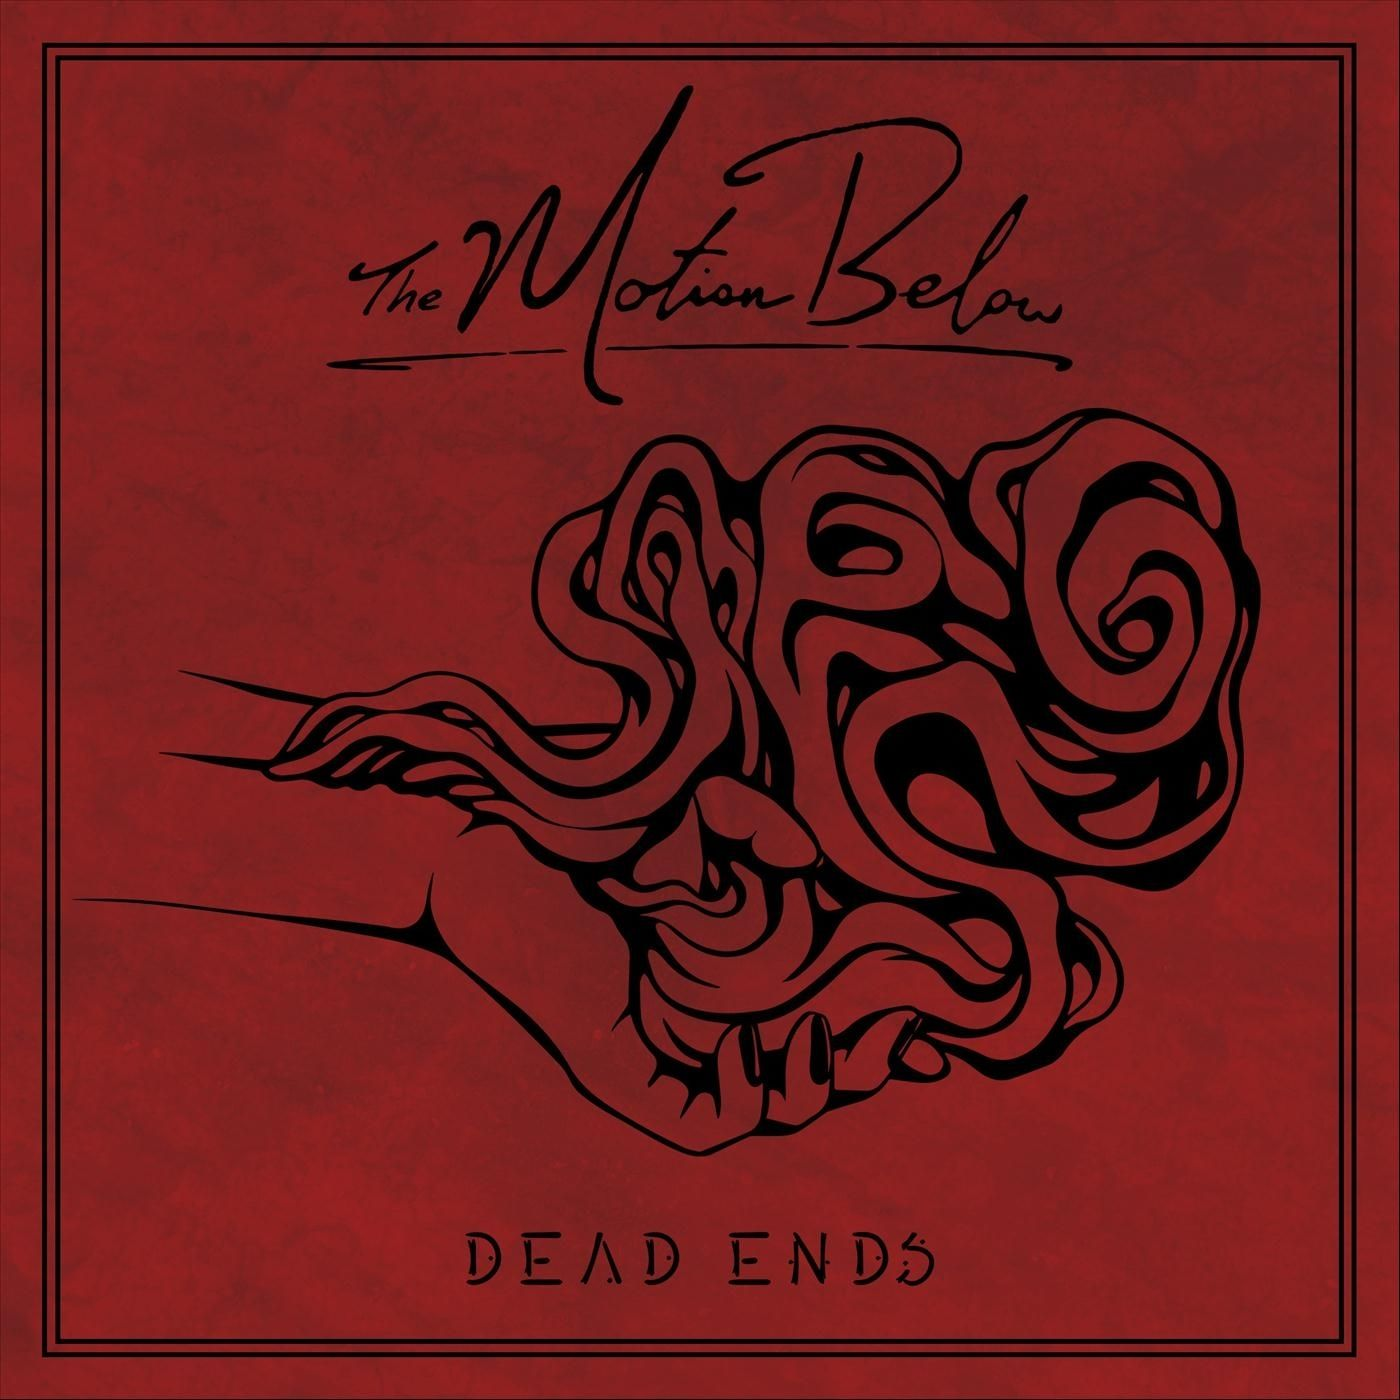 The Motion Below - Dead Ends [single] (2020)